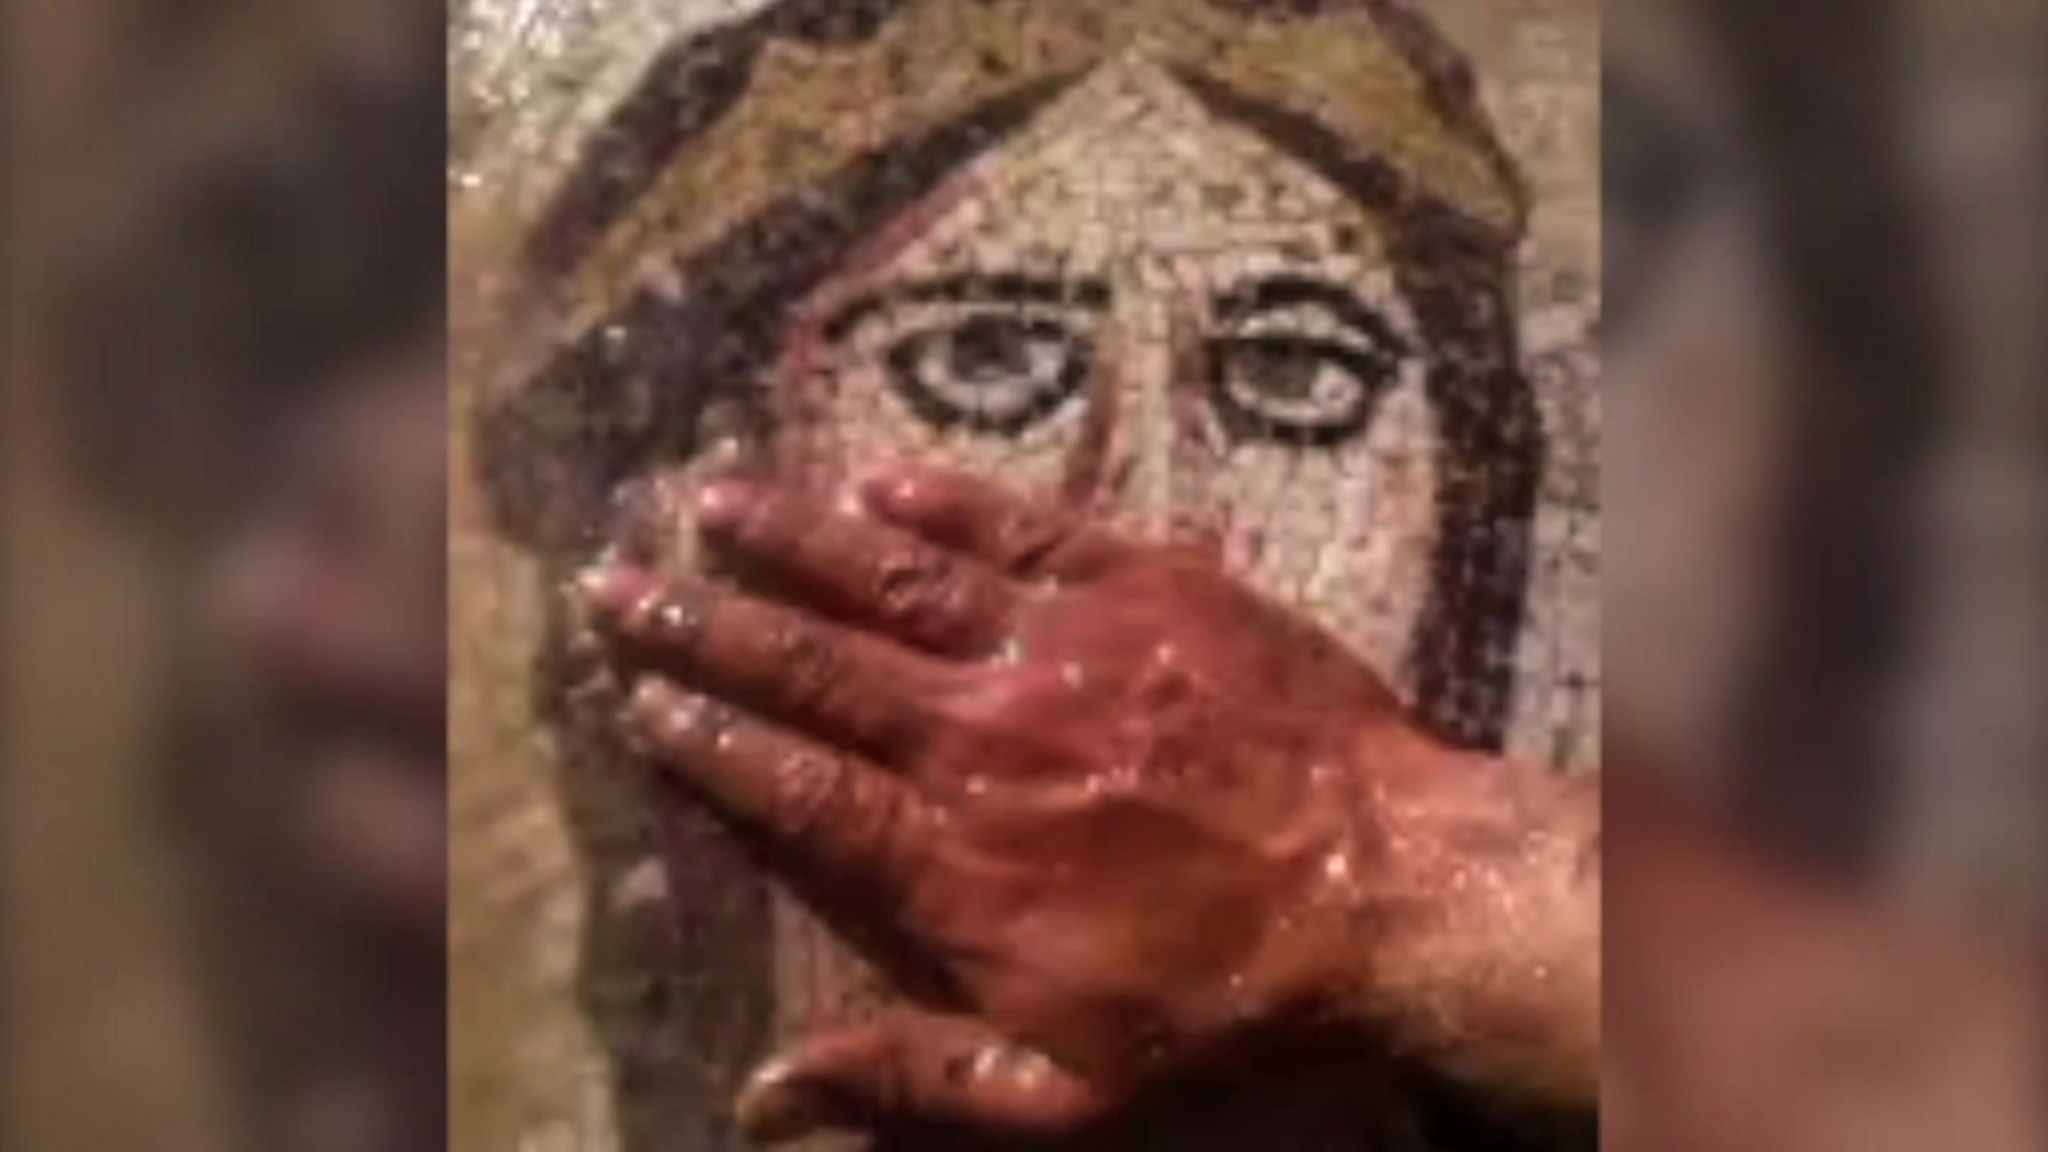 Man's hand covers mouth of mosaic image of female face